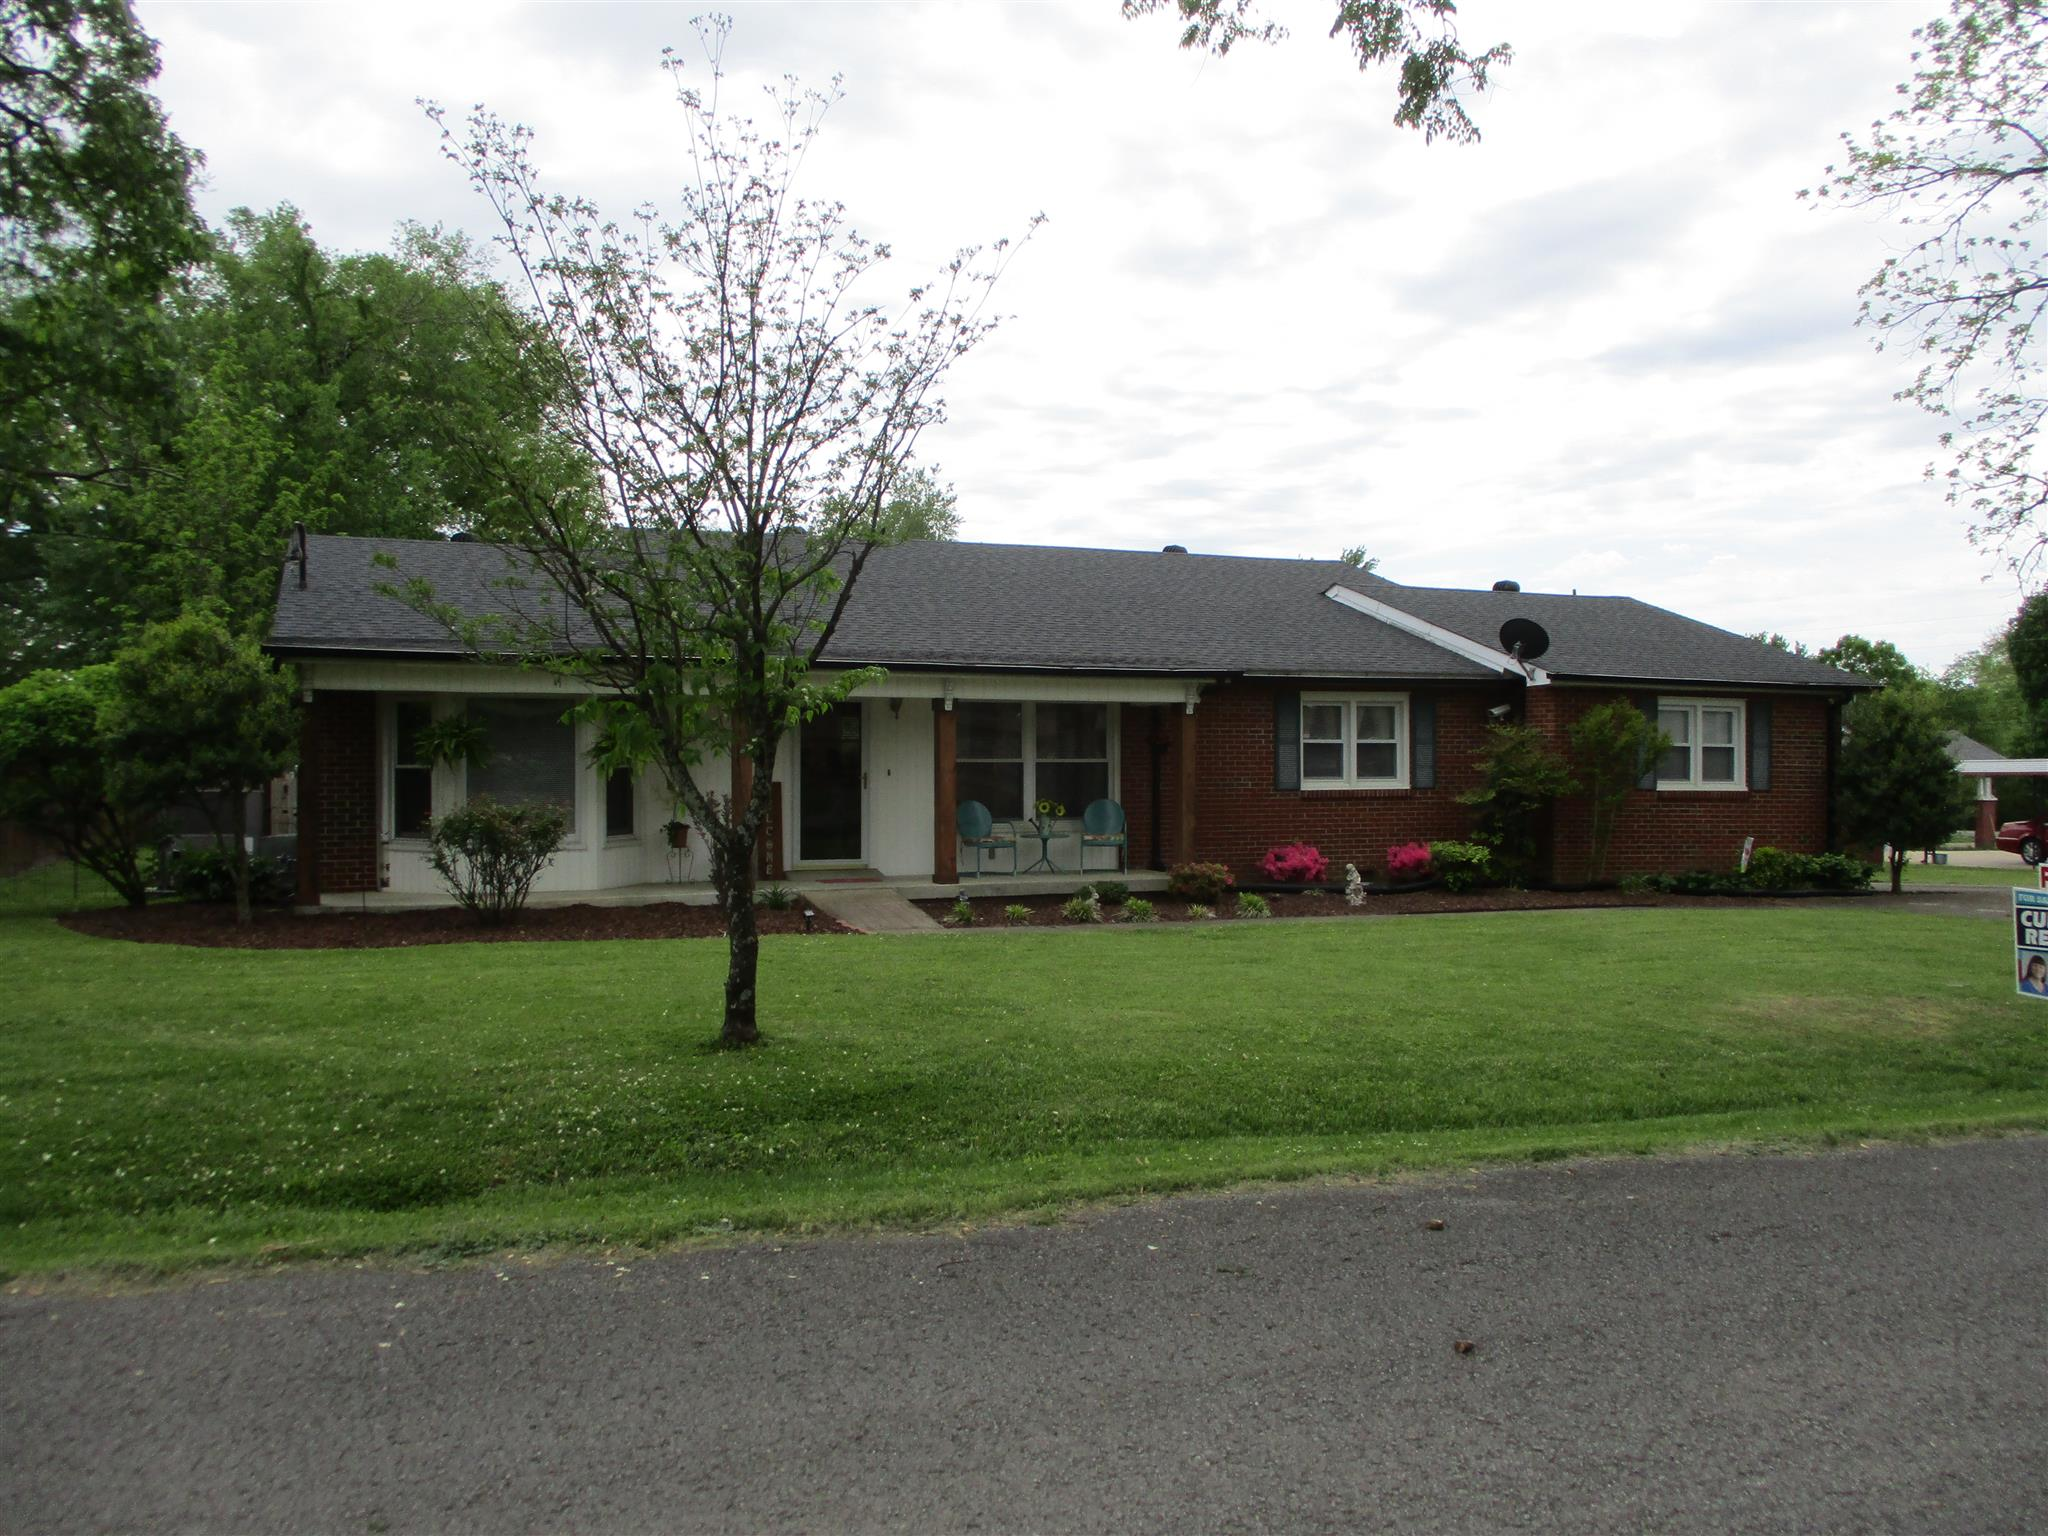 209 Silver St, Watertown, TN 37184 - Watertown, TN real estate listing